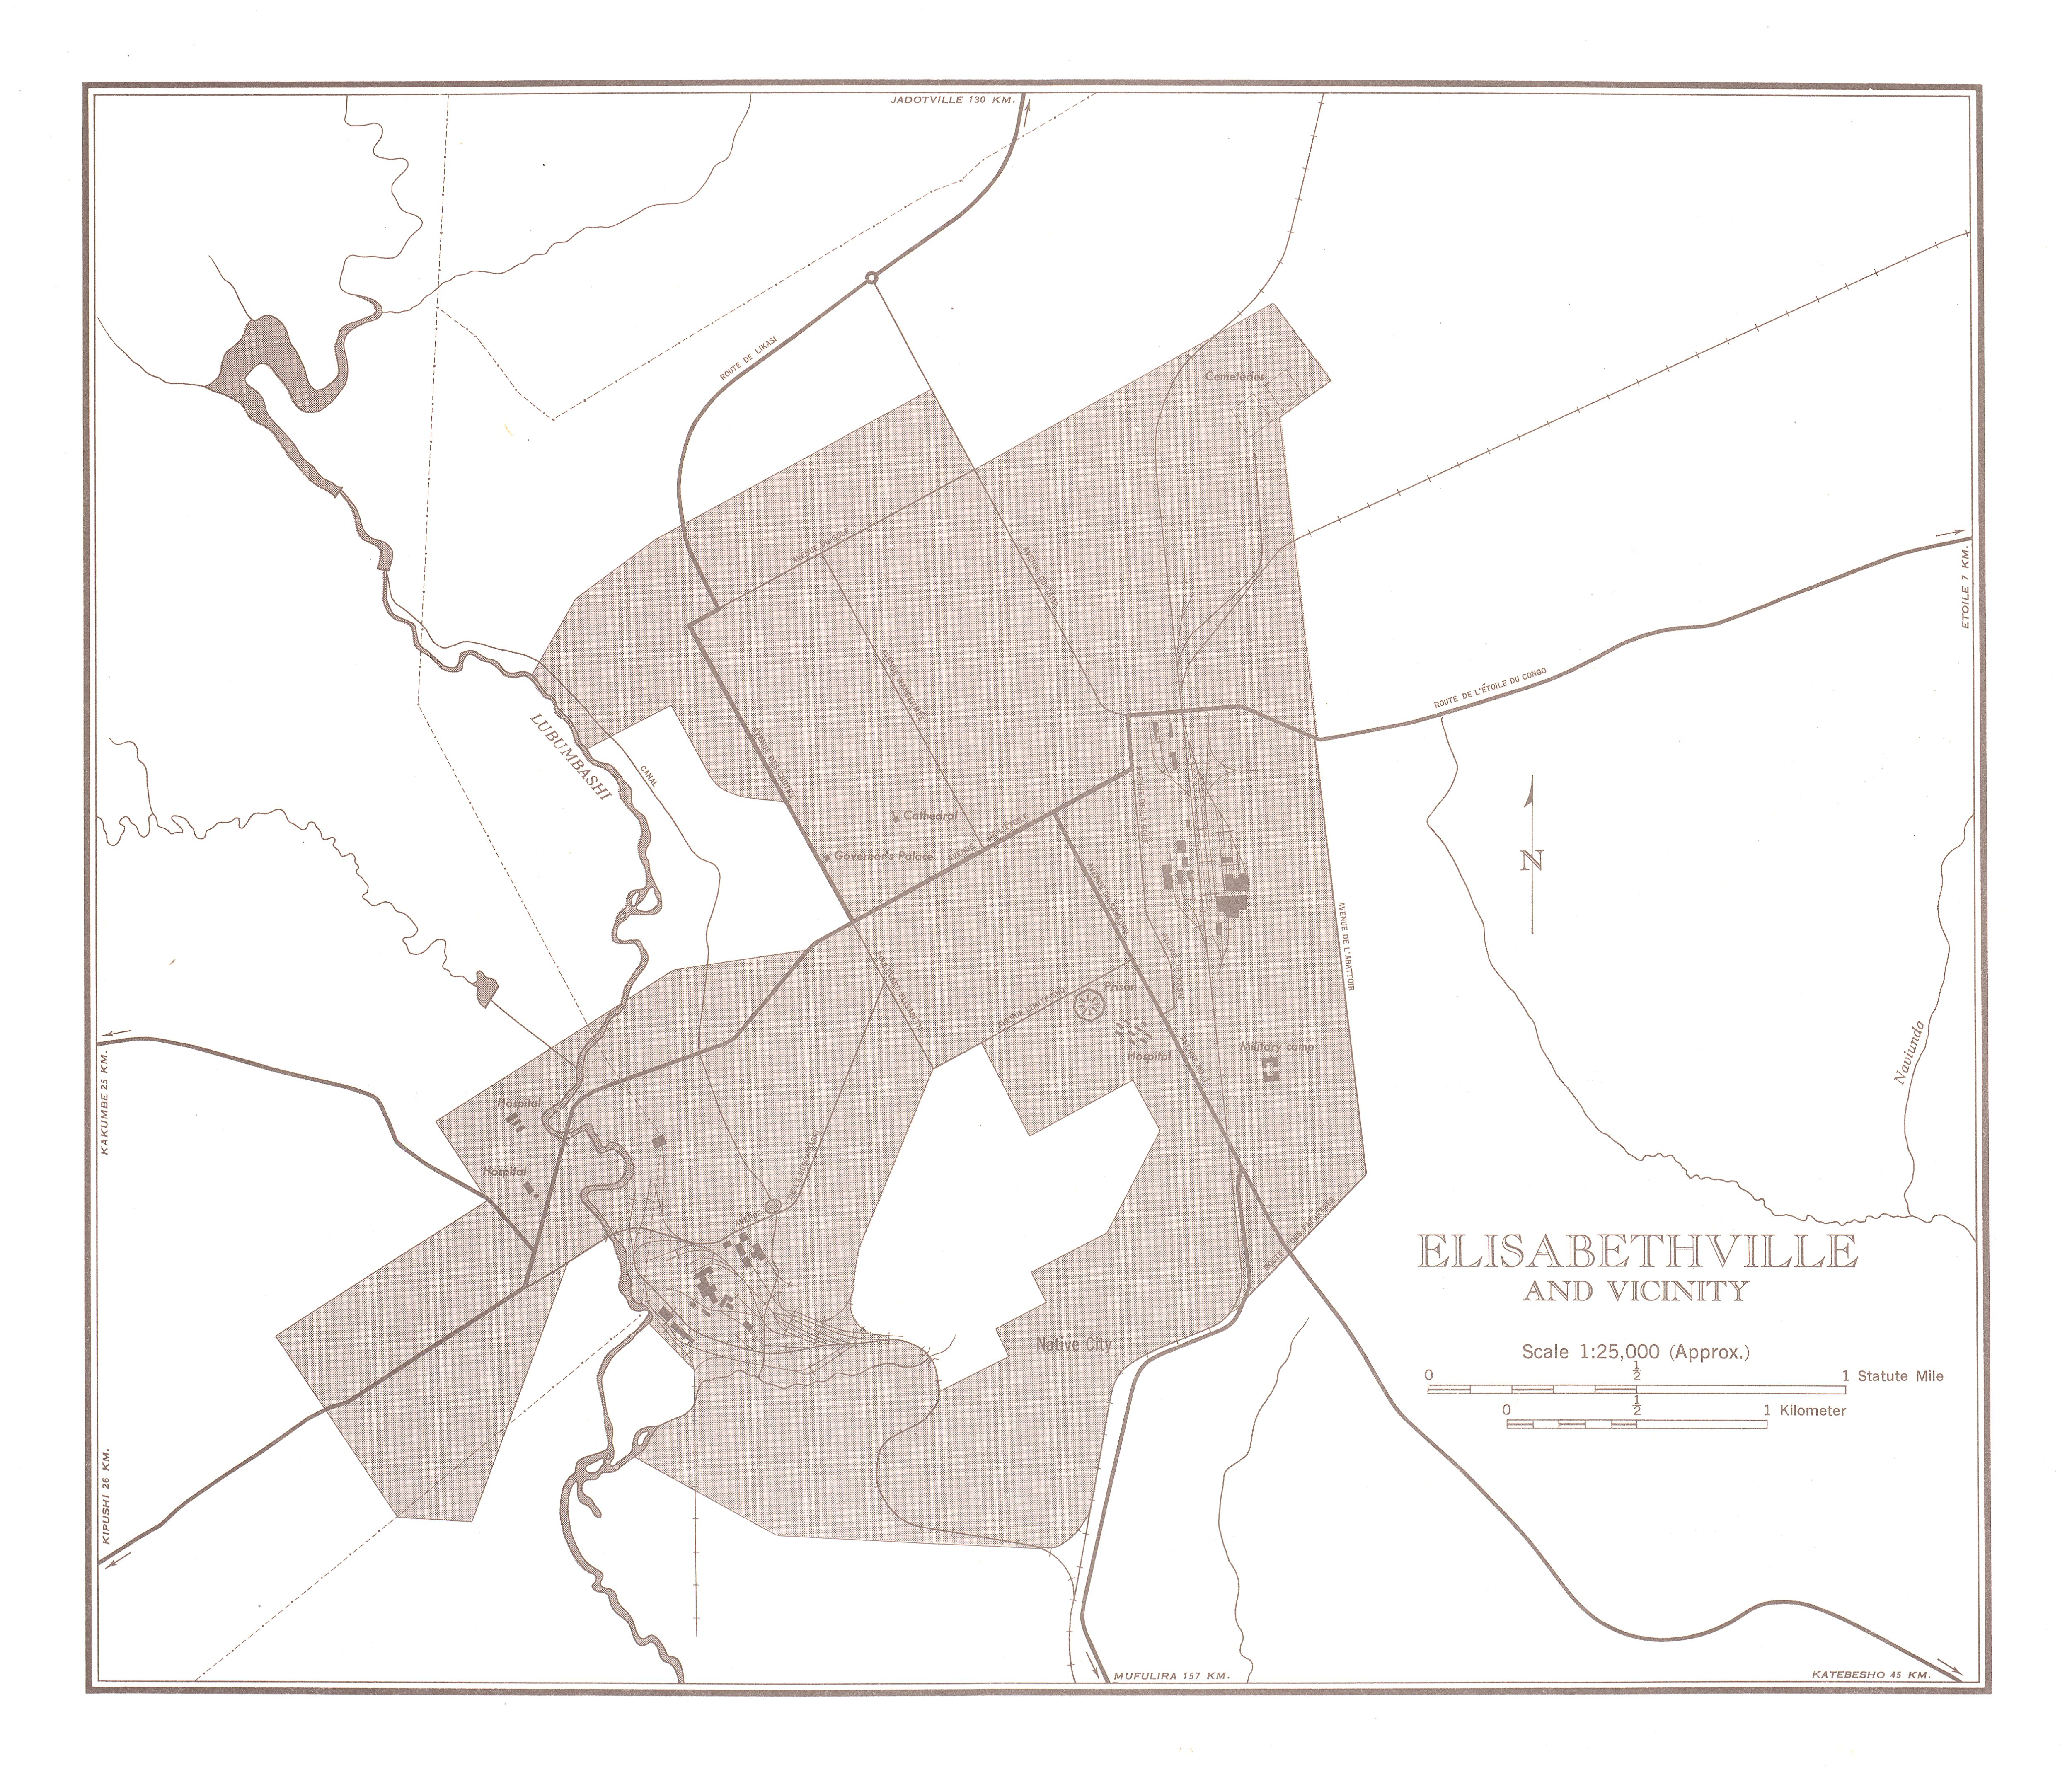 Lubumbashi (Elisabethville) and Vicinity Map, Democratic Republic of the Congo (Zaire) 1954